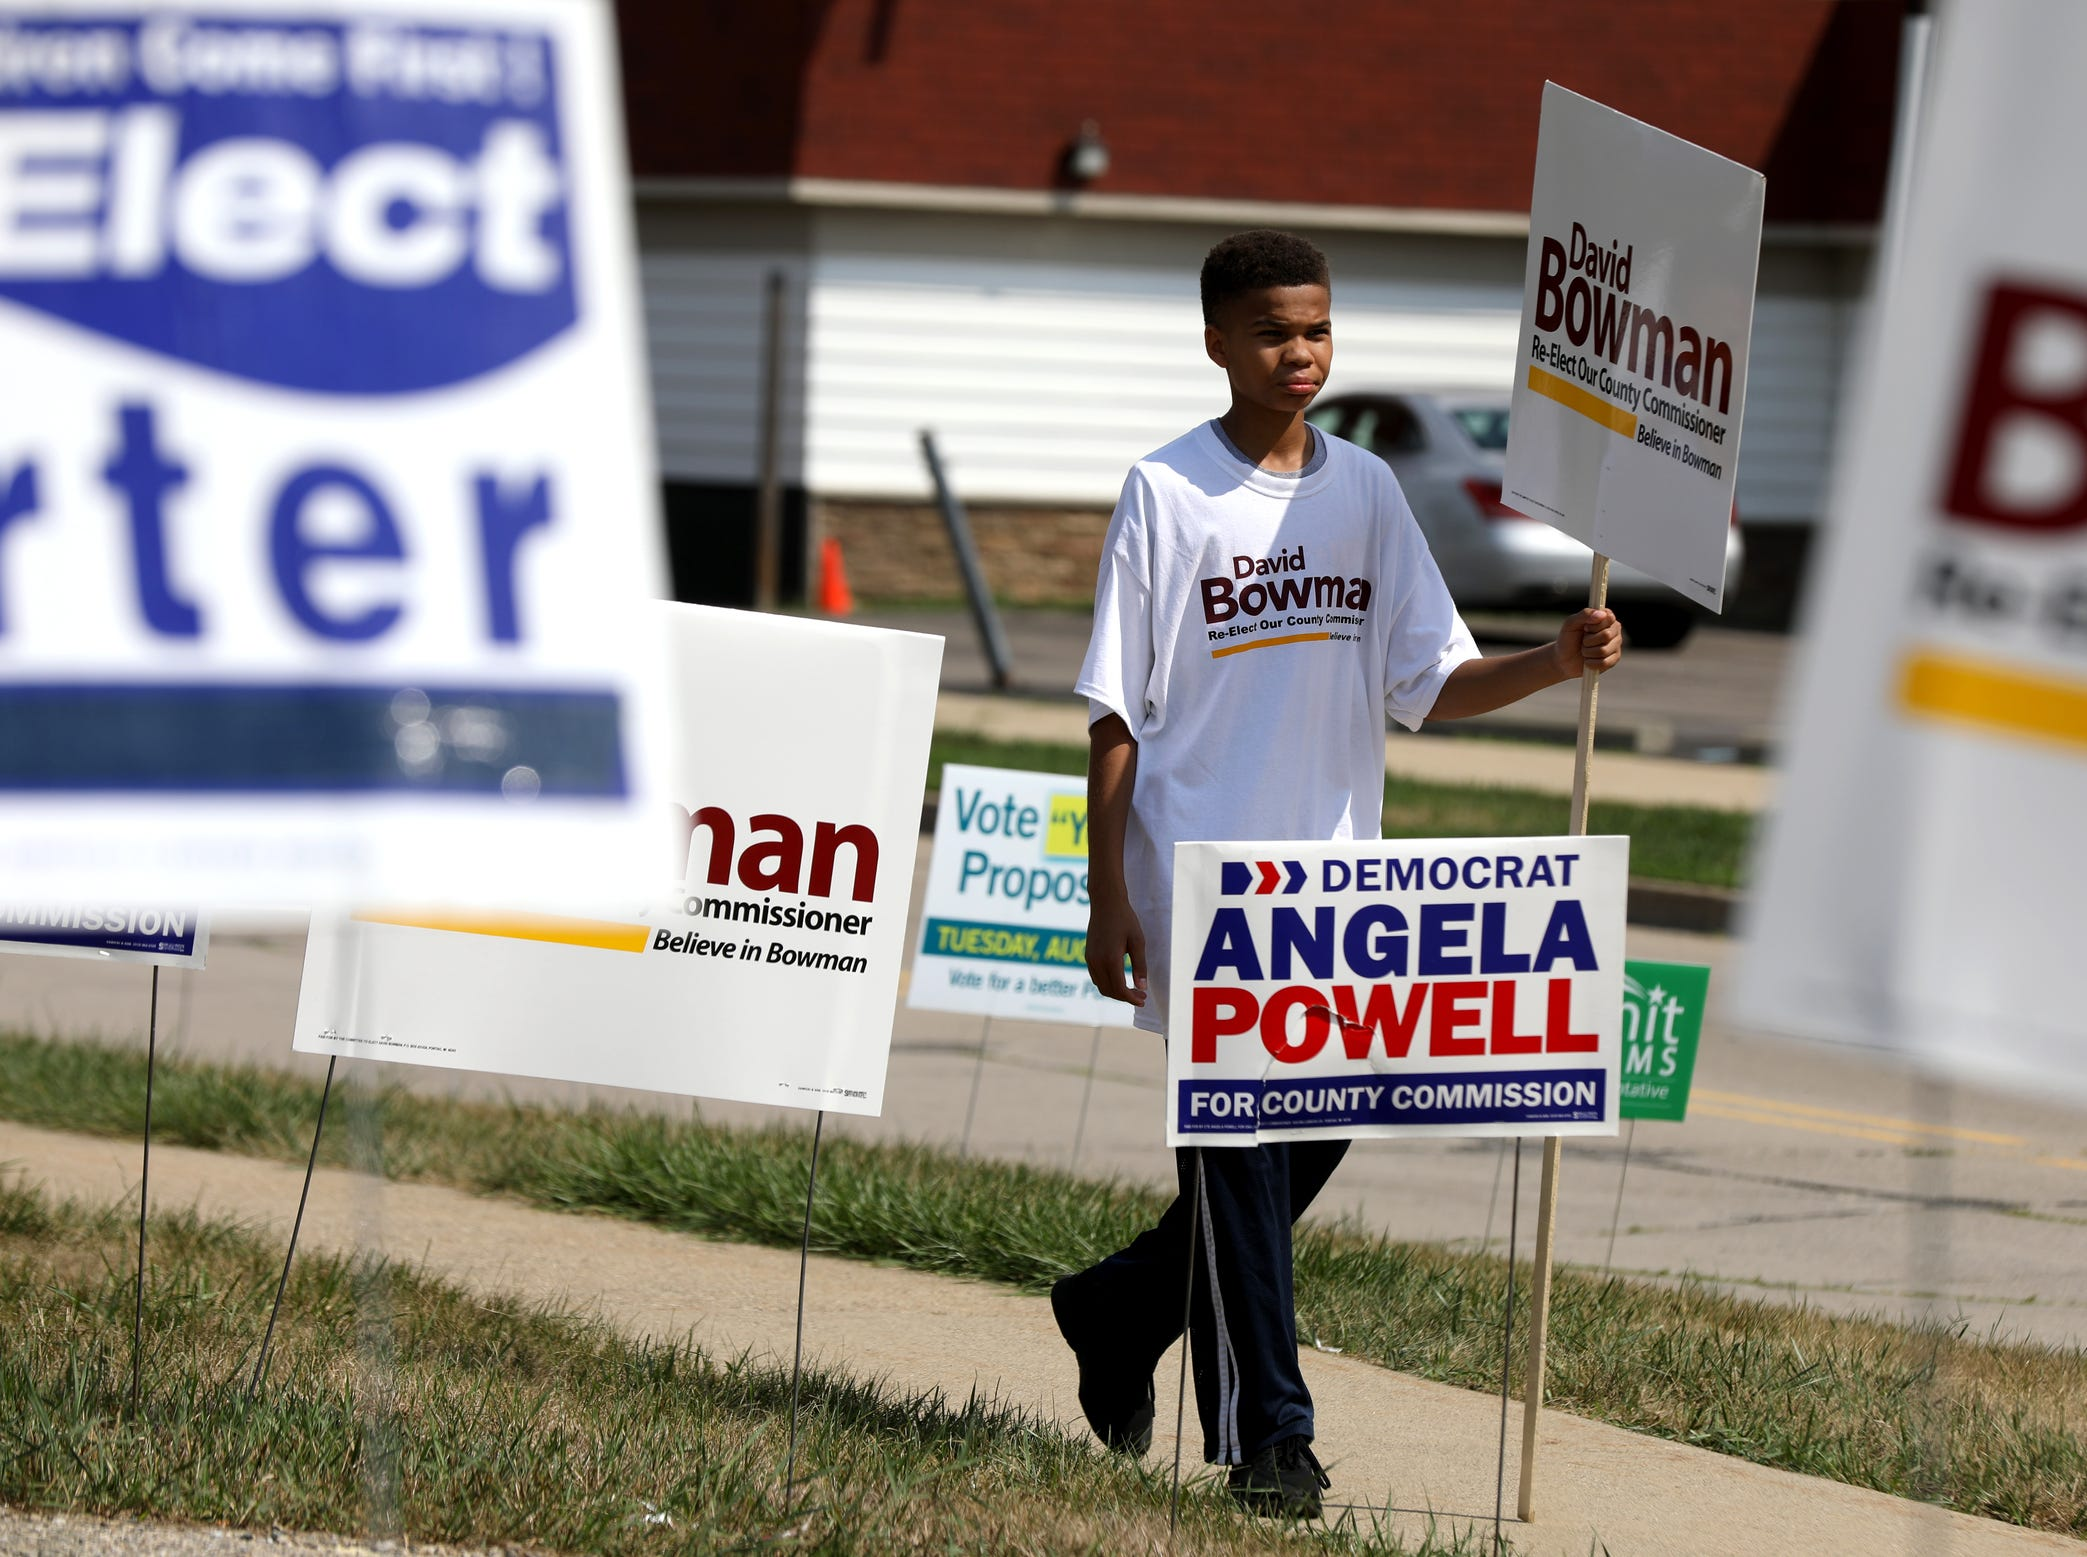 Josiah Elam, 13 of Pontiac carries a sign in support of a candidate while outside the  Bowens Center in Pontiac on Tuesday, August 7, 2018.